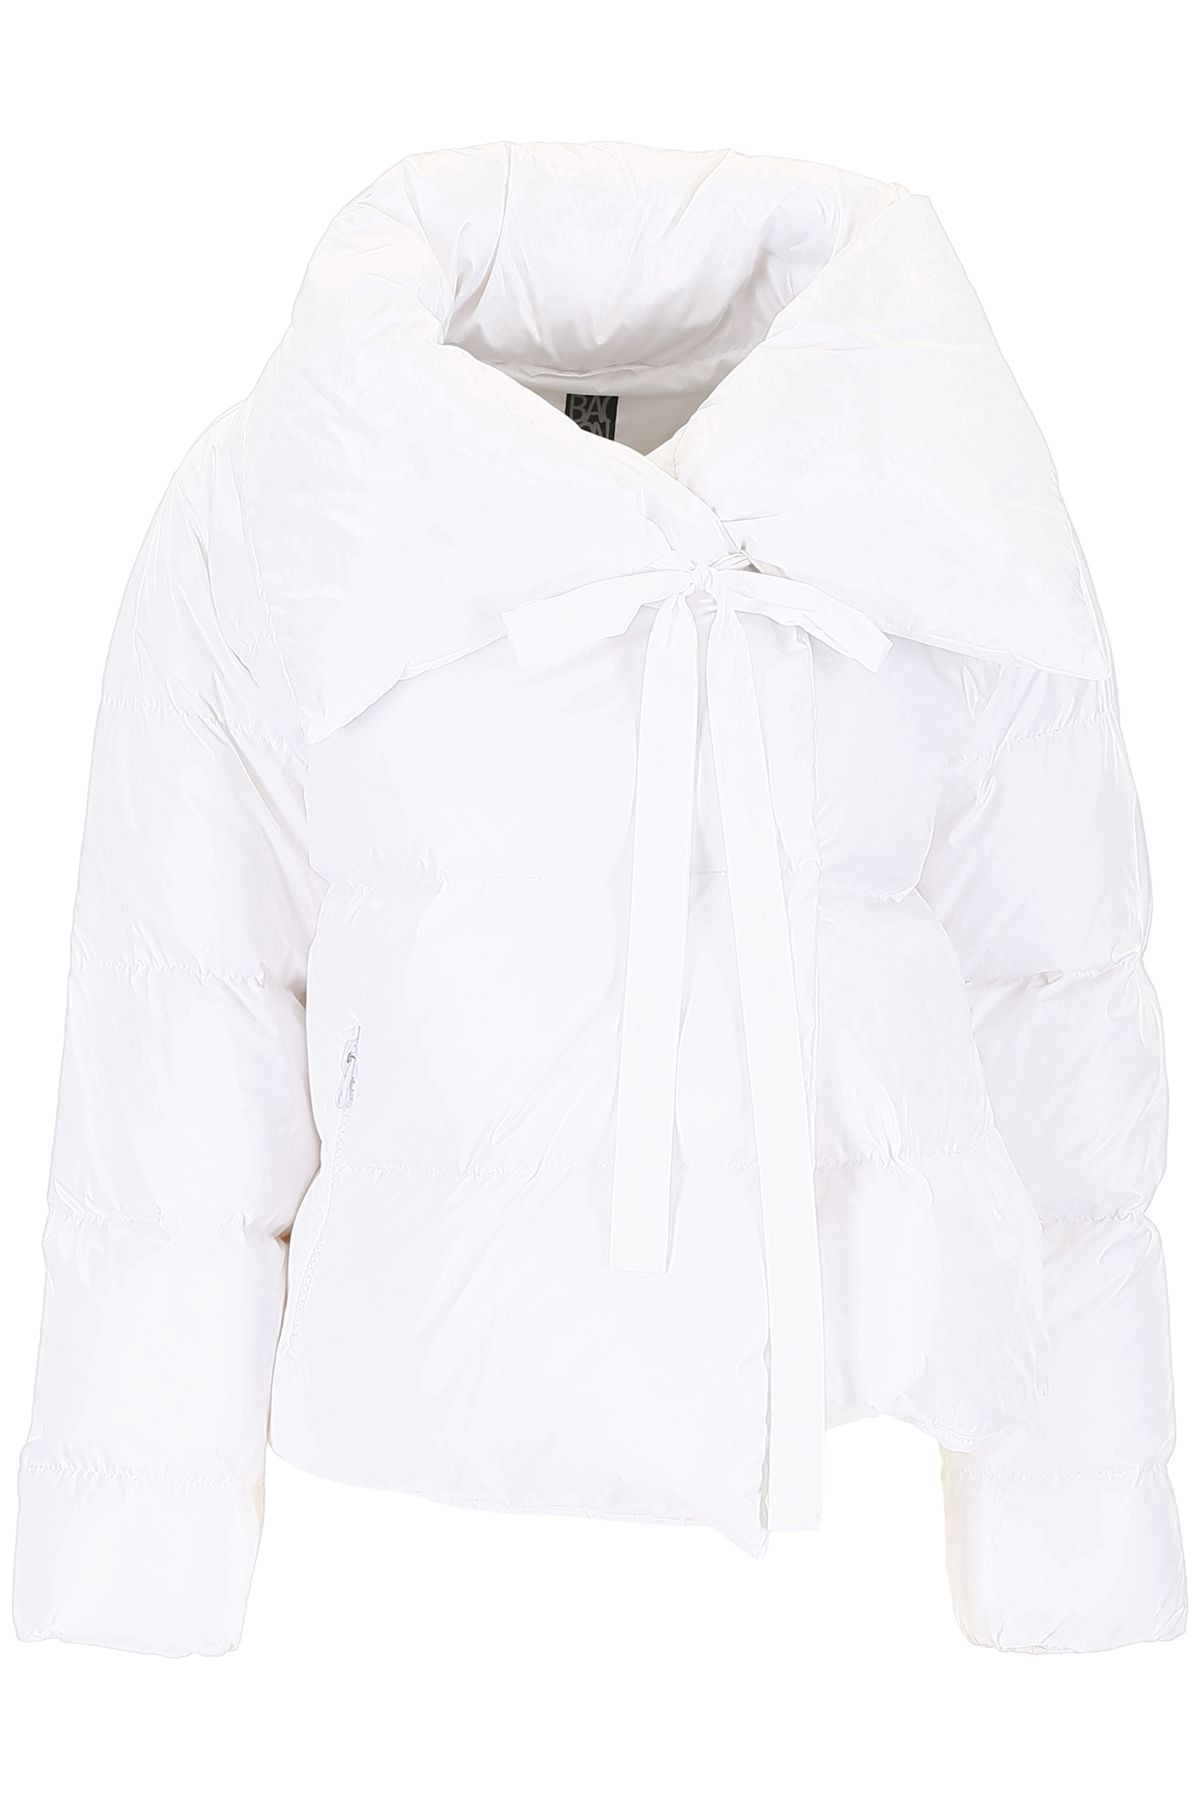 BACON CLOTHING Puffer Jacket With Bow in White